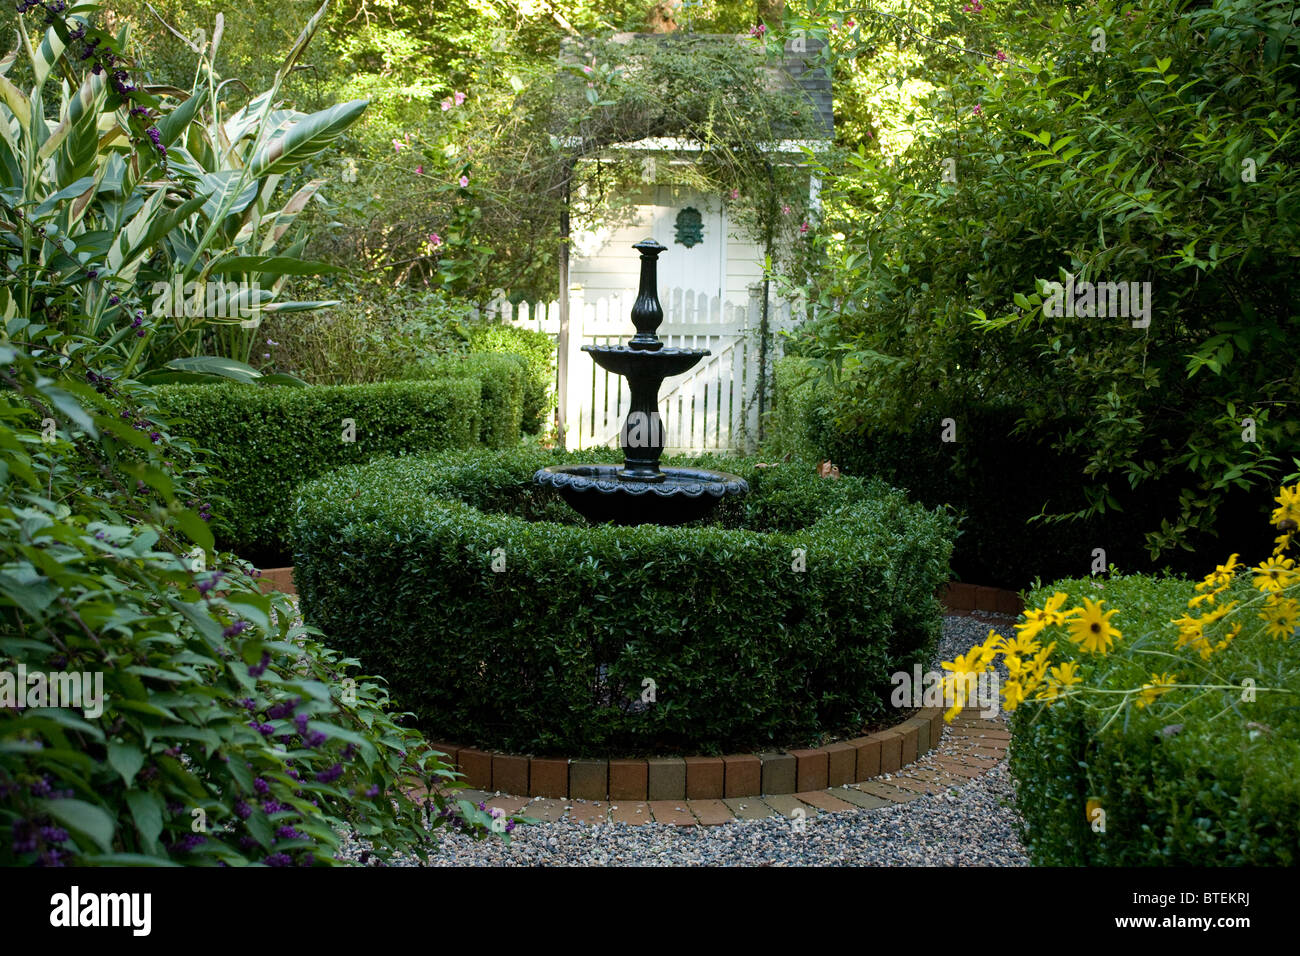 Small Garden Courtyard With A Fountain Water Feature